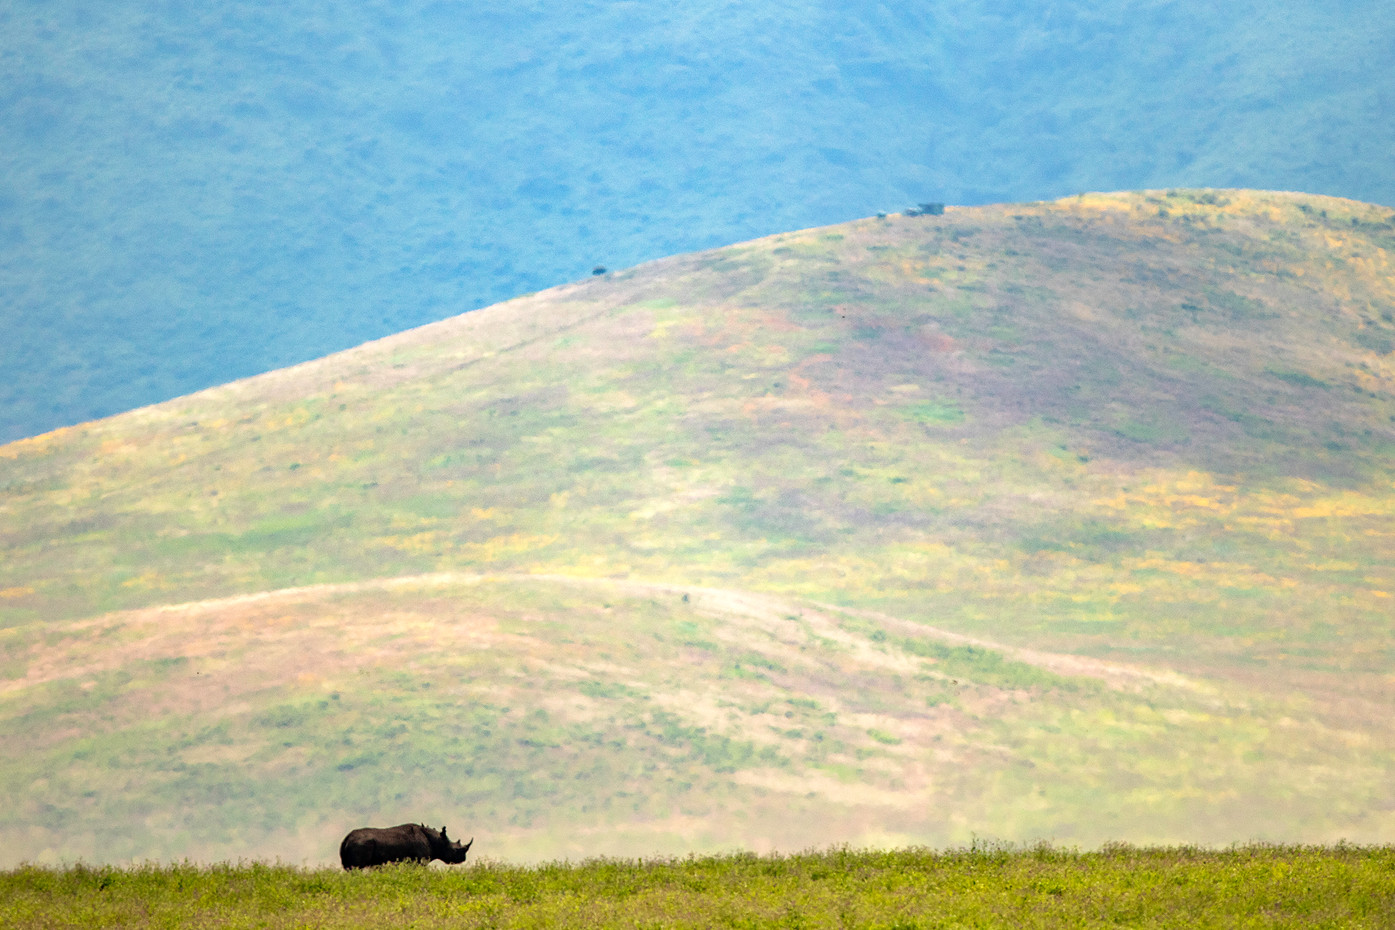 Black Rhino in the Ngorongoro Crater, Tanzania